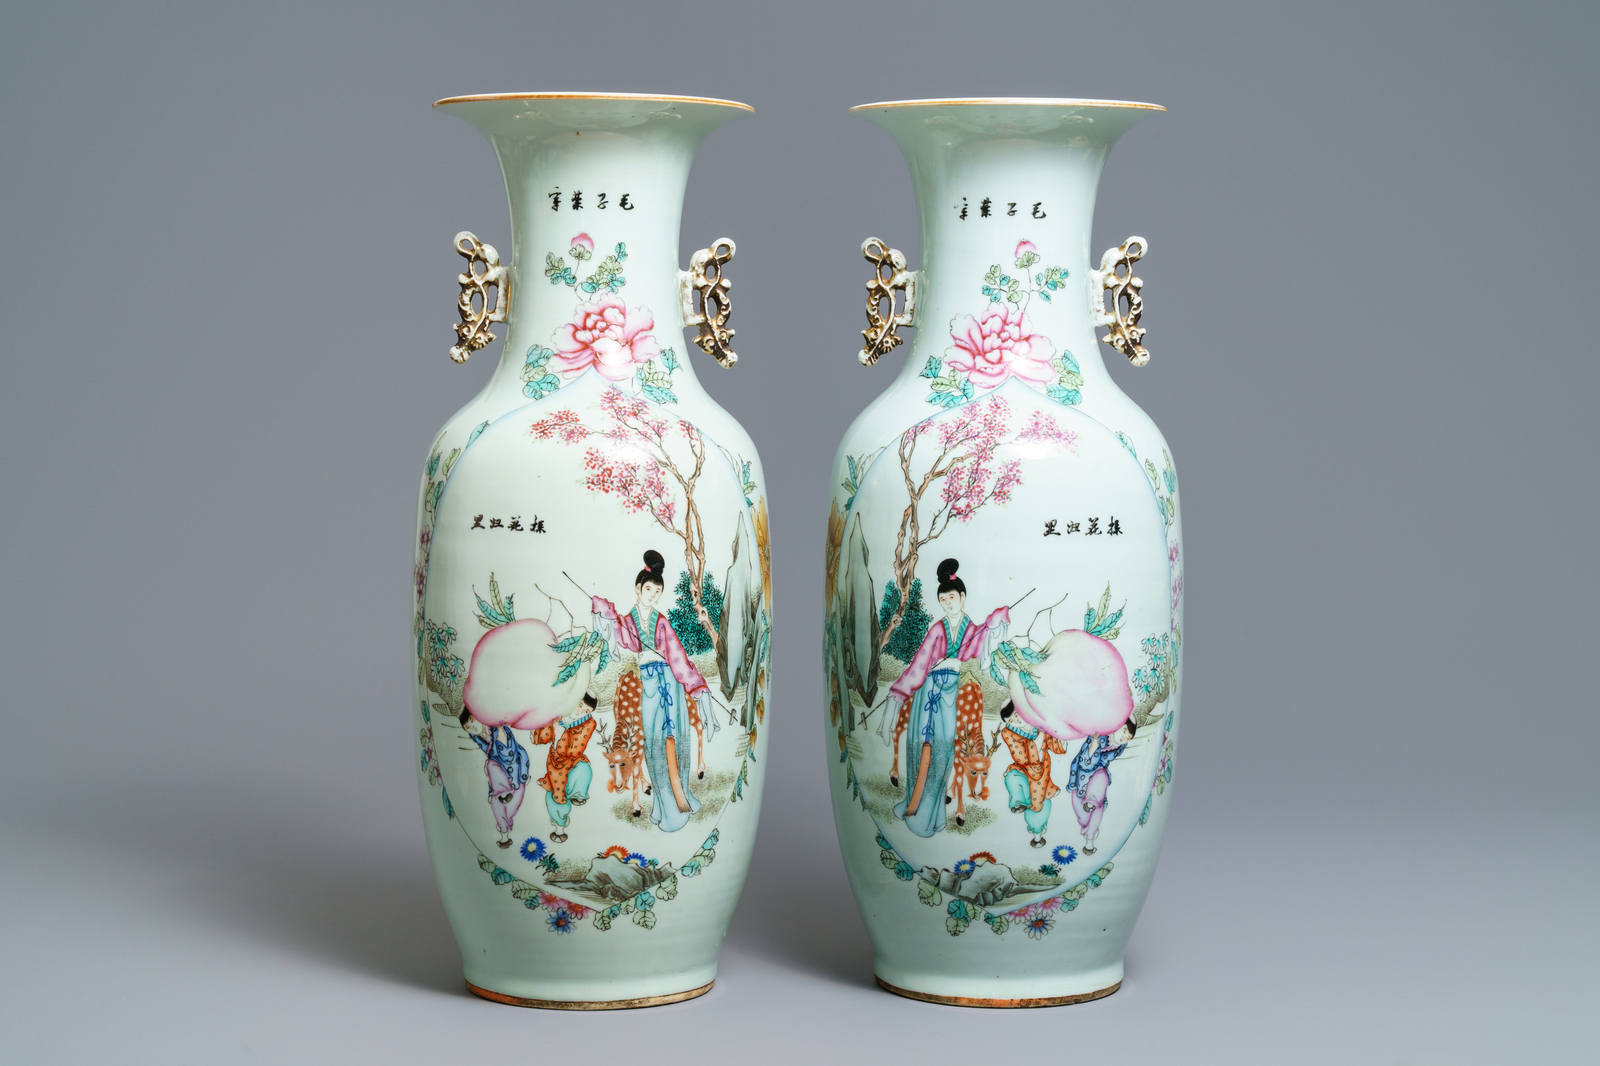 Lot 44 - A pair of Chinese famille rose 'Magu' vases, 19/20th C.